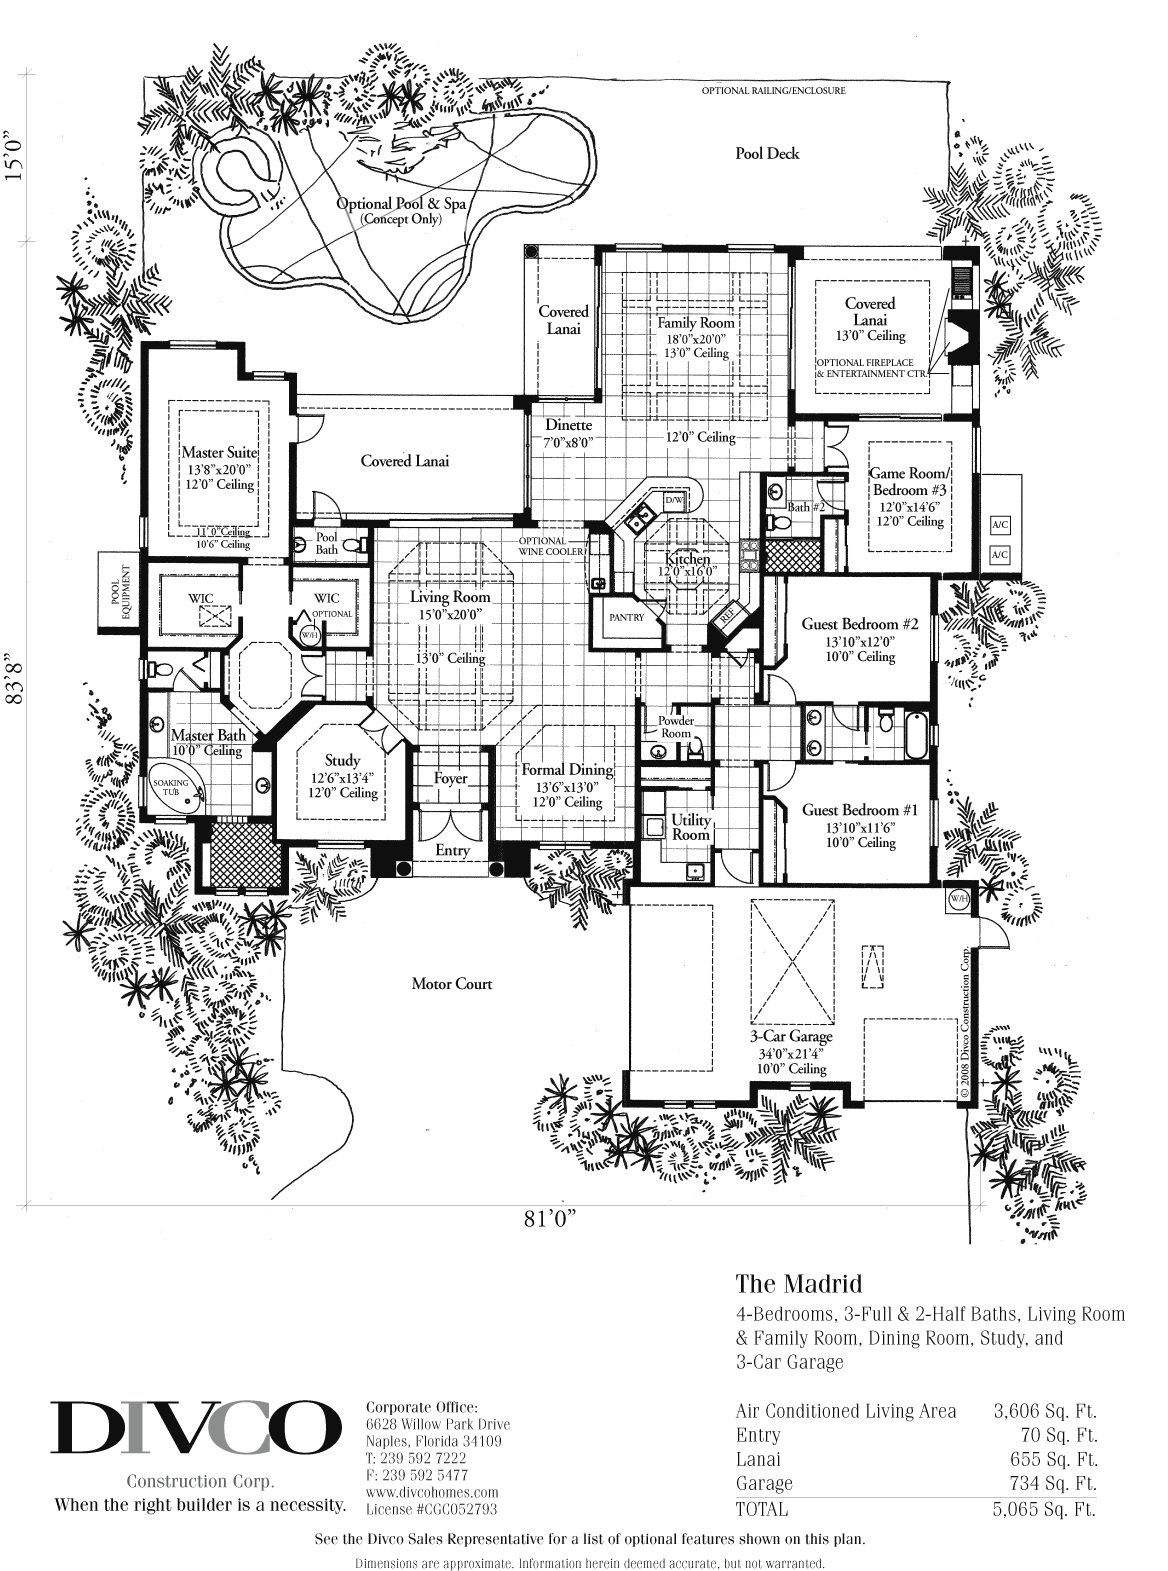 Luxury Home Floor Plans Madrid Floorplan Floorplan Of A Luxury Home By Divco Construction Naples Florida Award Planos De Casas Planos Casas De Una Planta